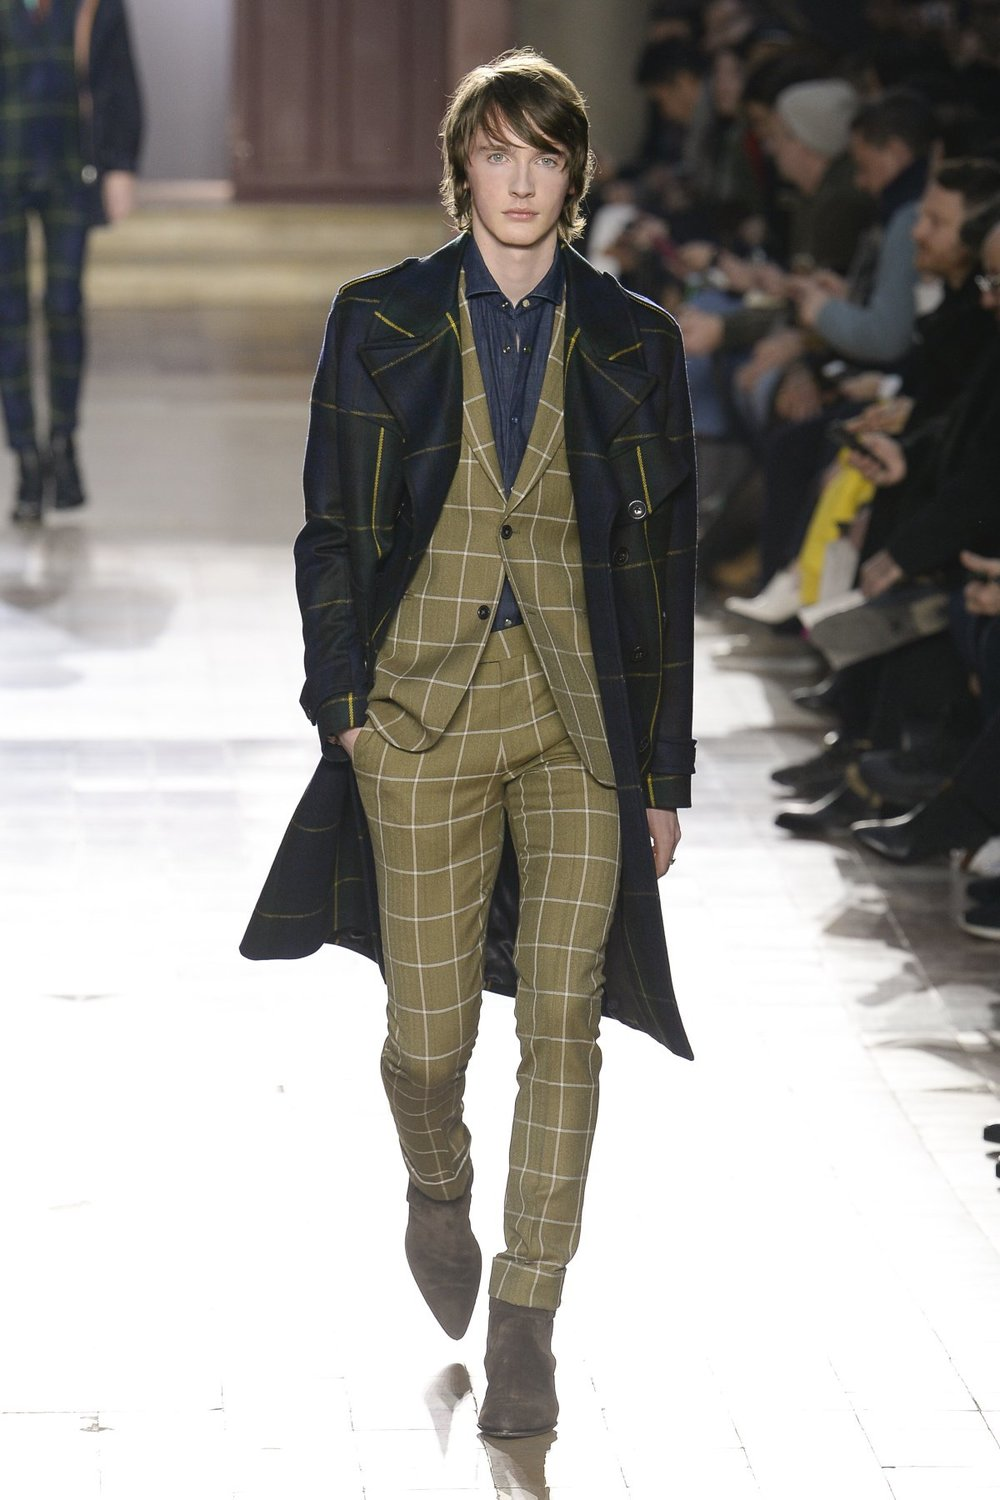 paul_smith_look_1_2017_aw_mens.jpeg